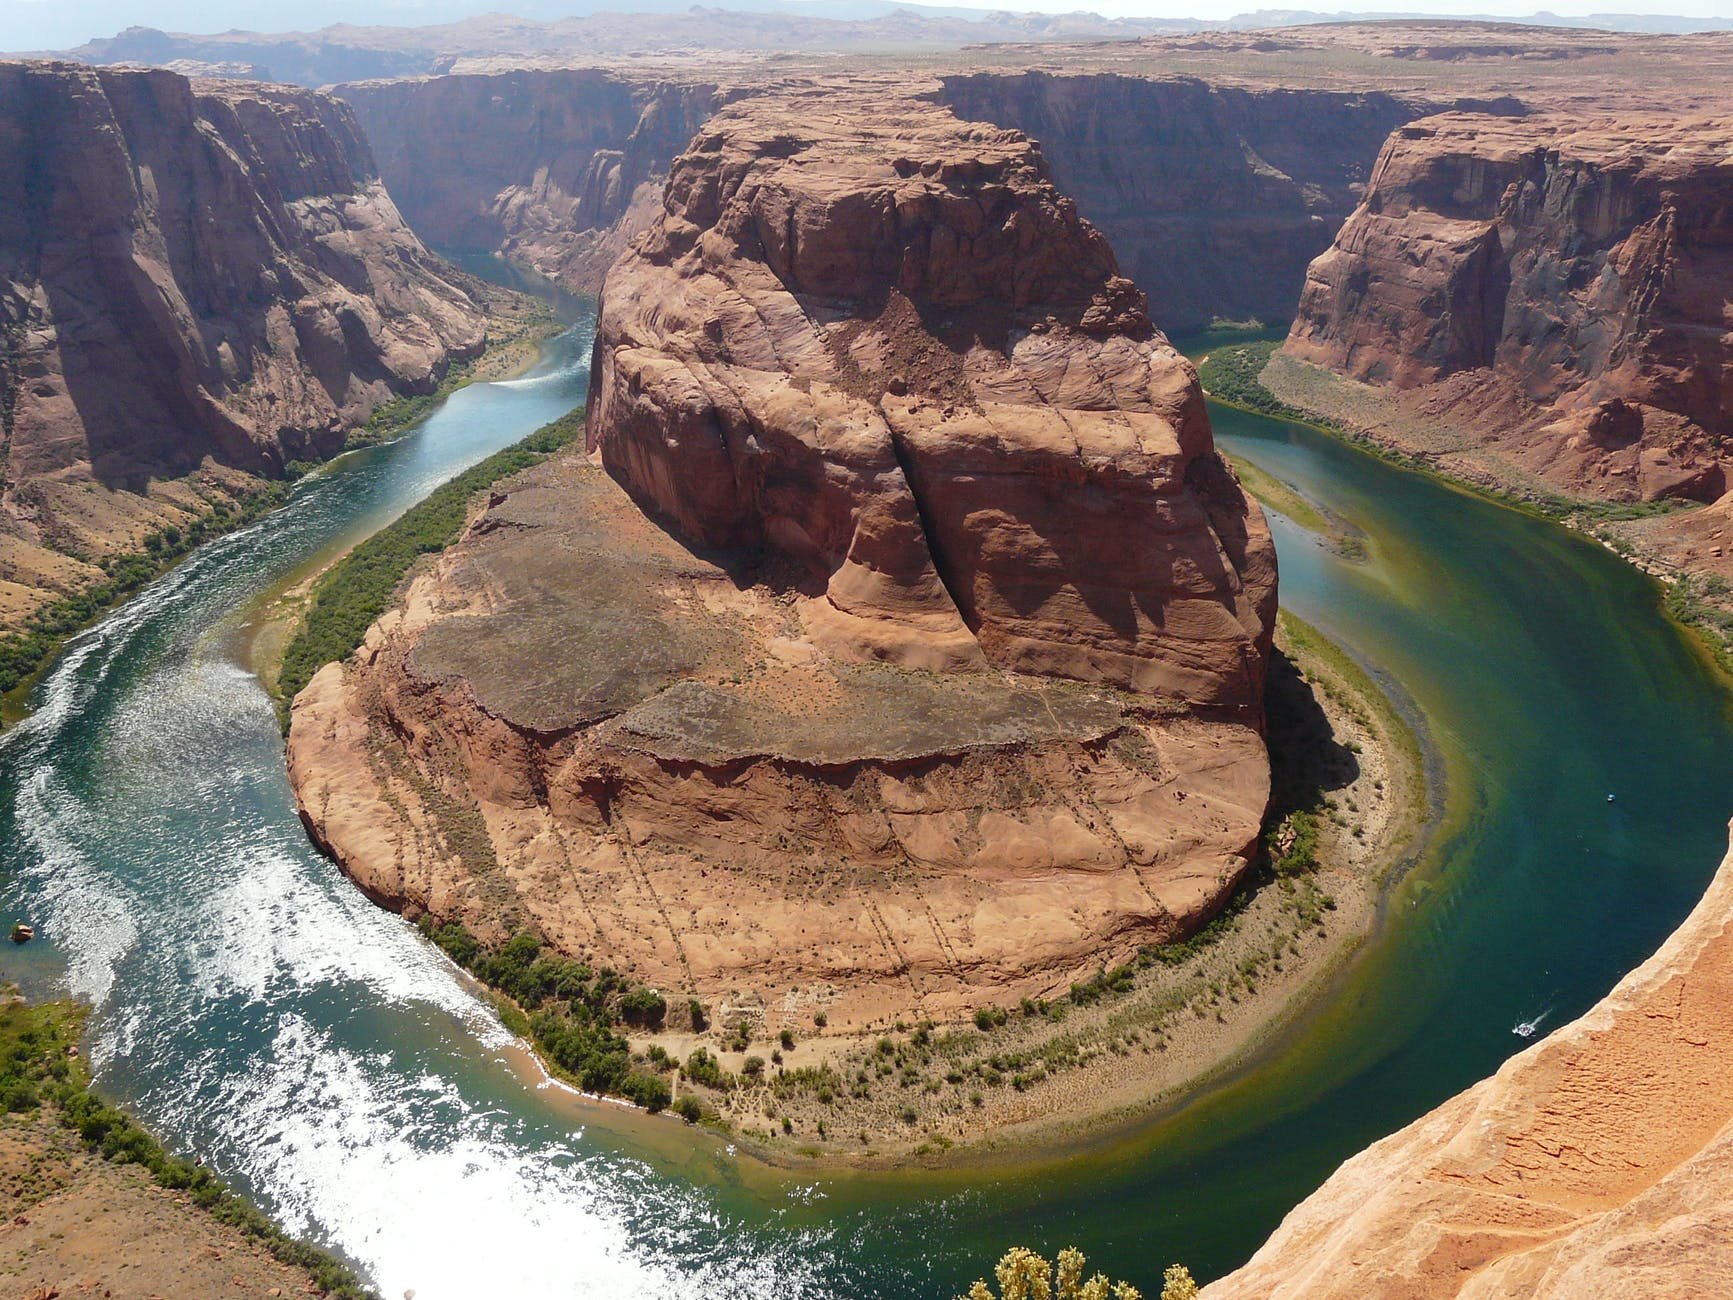 horseshoe-bend-page-arizona-colorado-river-86703.jpeg